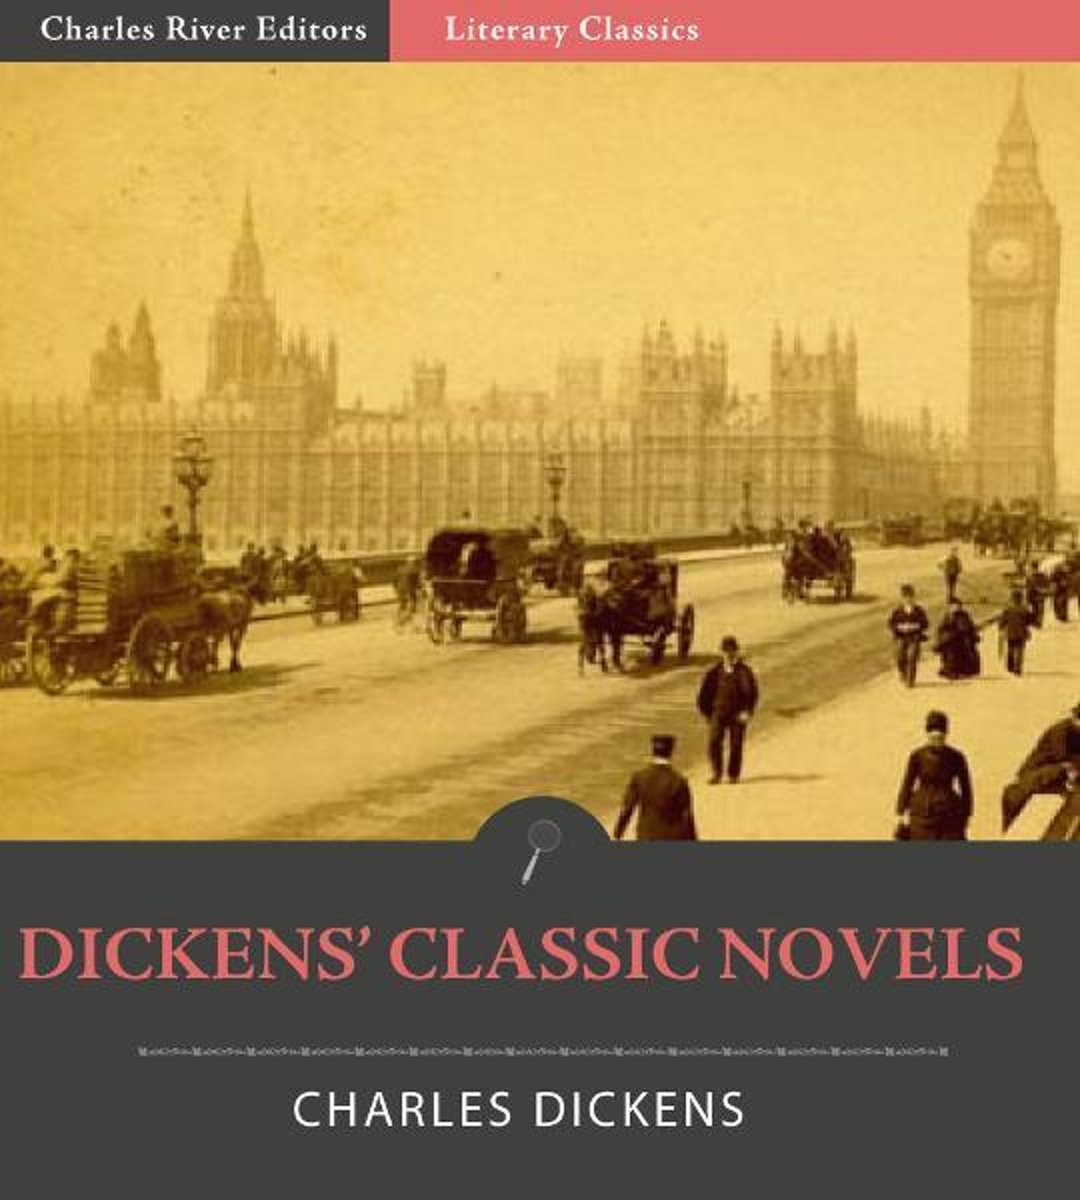 Charles Dickens Classic Novels: A Tale of Two Cities and Great Expectations (Illustrated Edition)